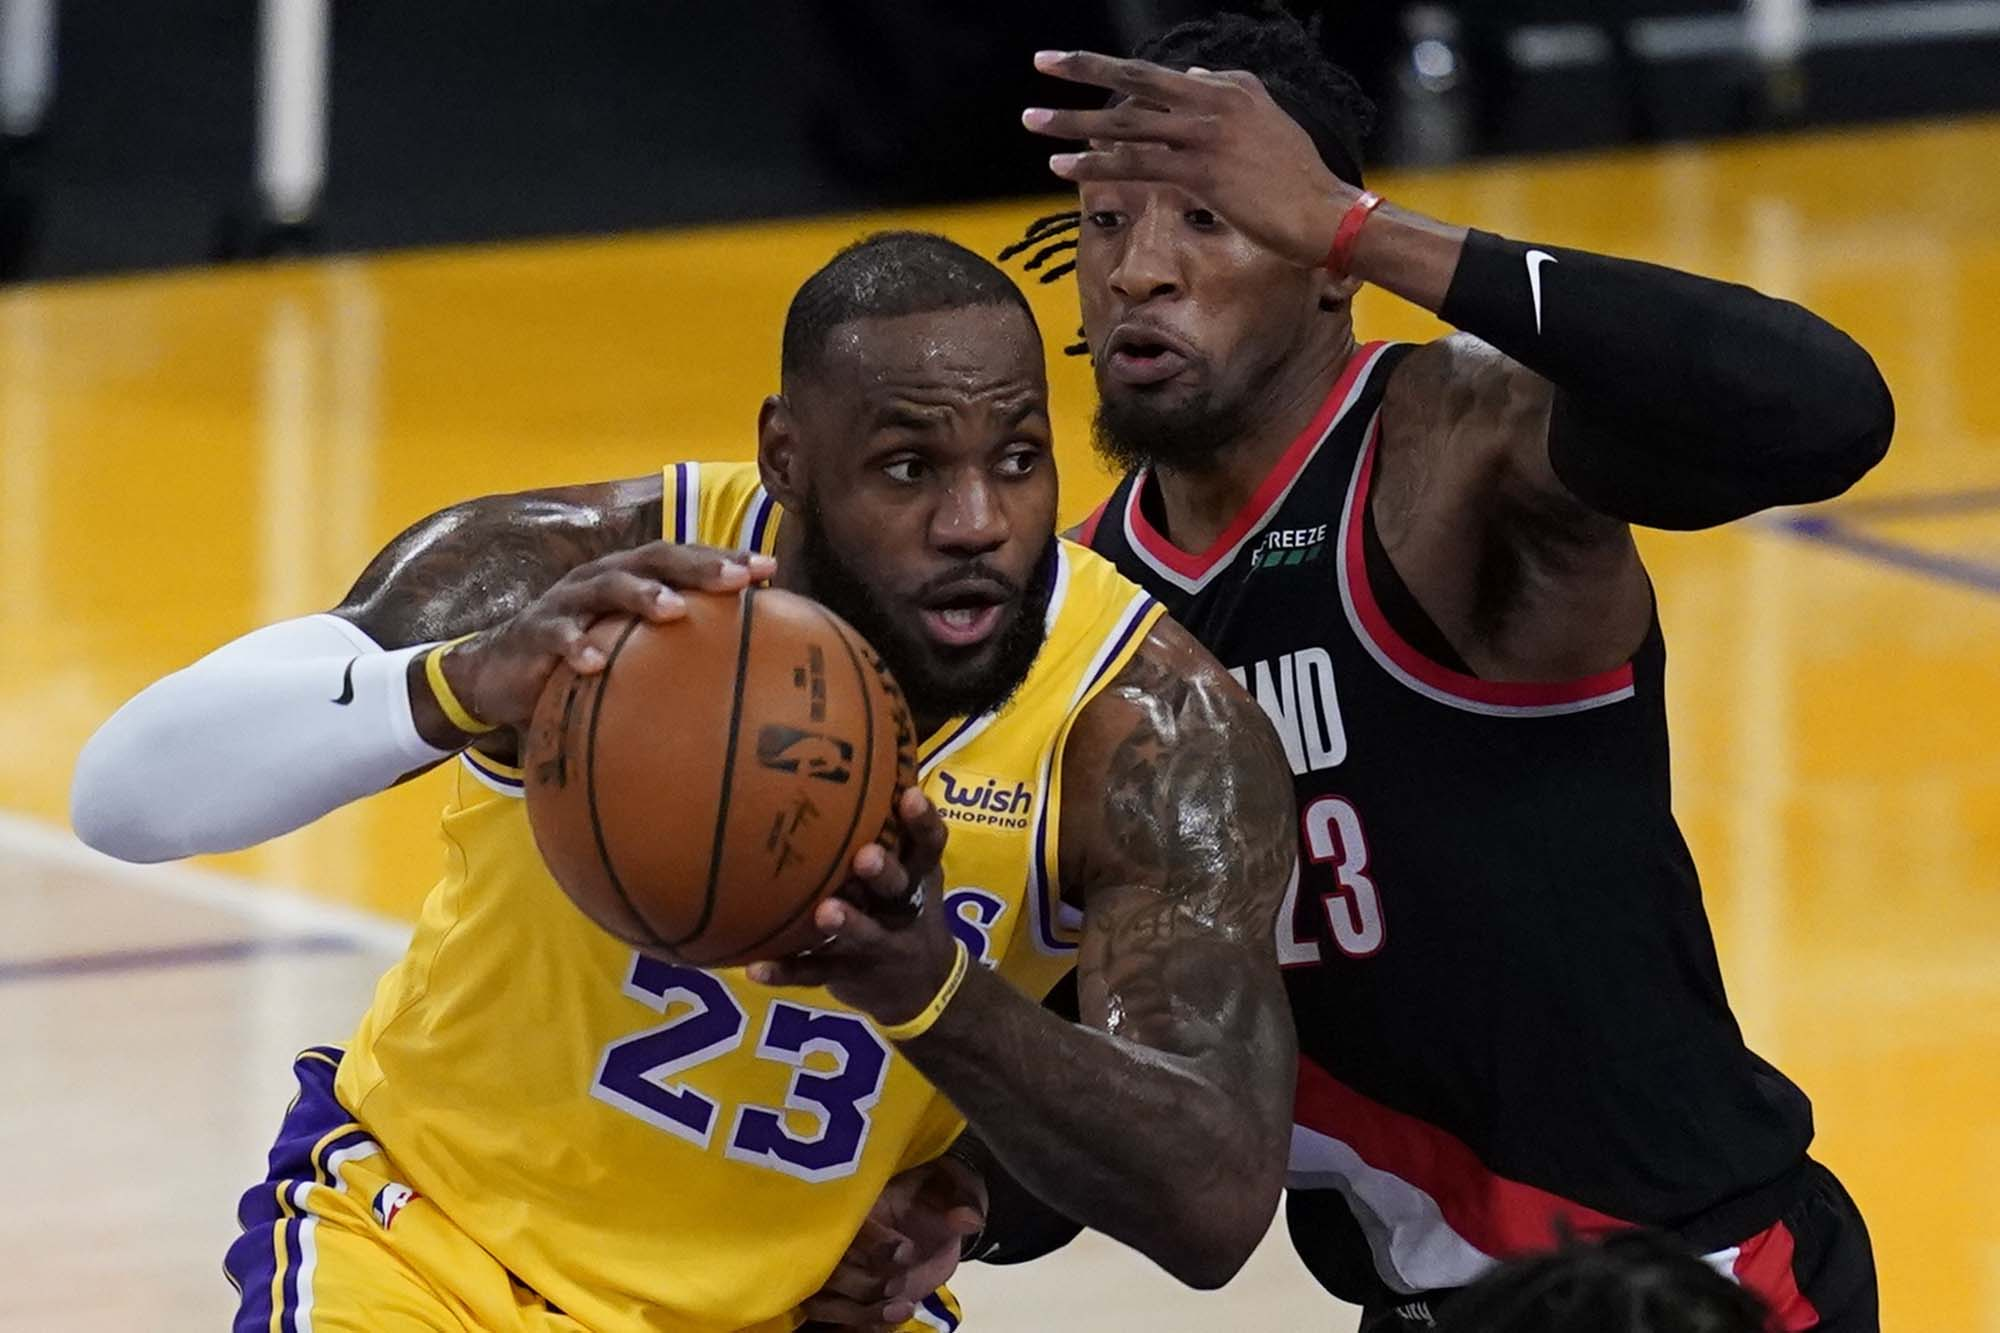 LeBron James and the LA Lakers yet to click in early days of NBA season